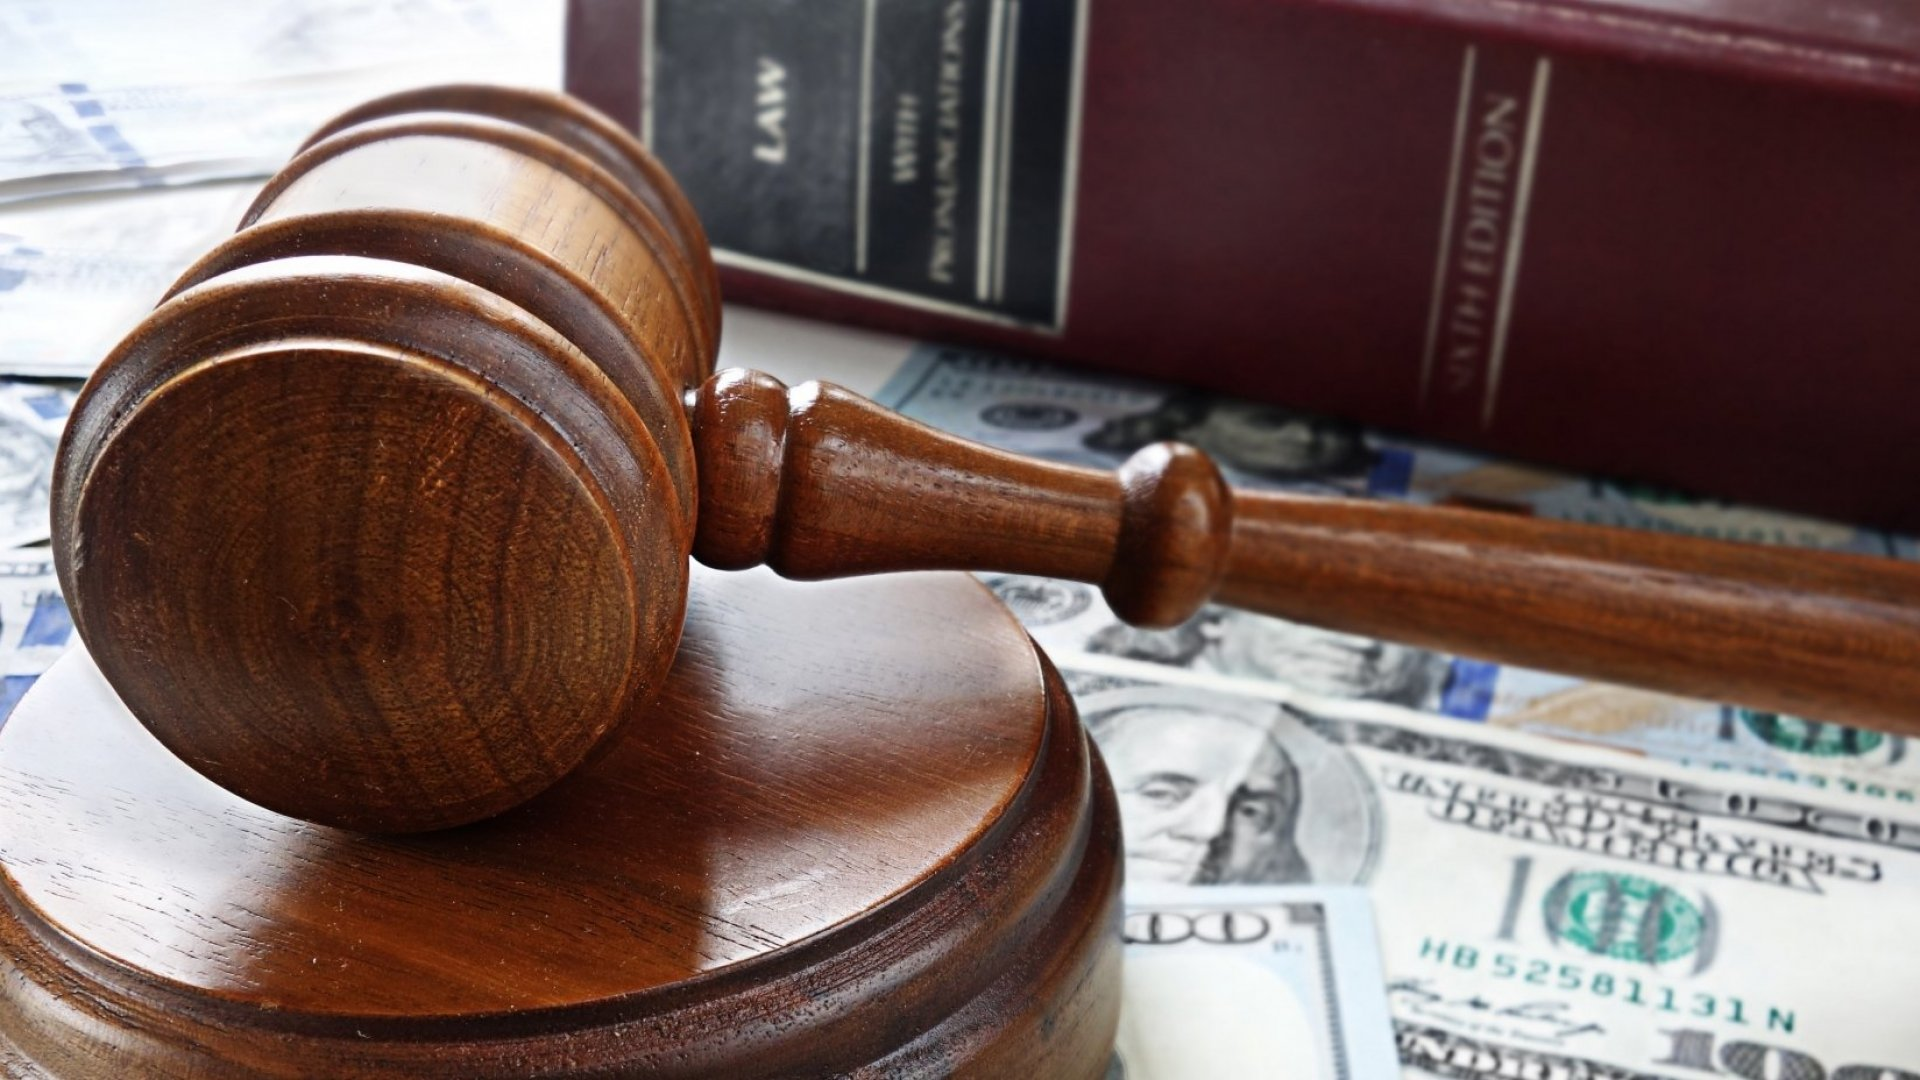 5 Things Companies Should Do Now to Avoid Costly (and Harmful) Employee Lawsuits